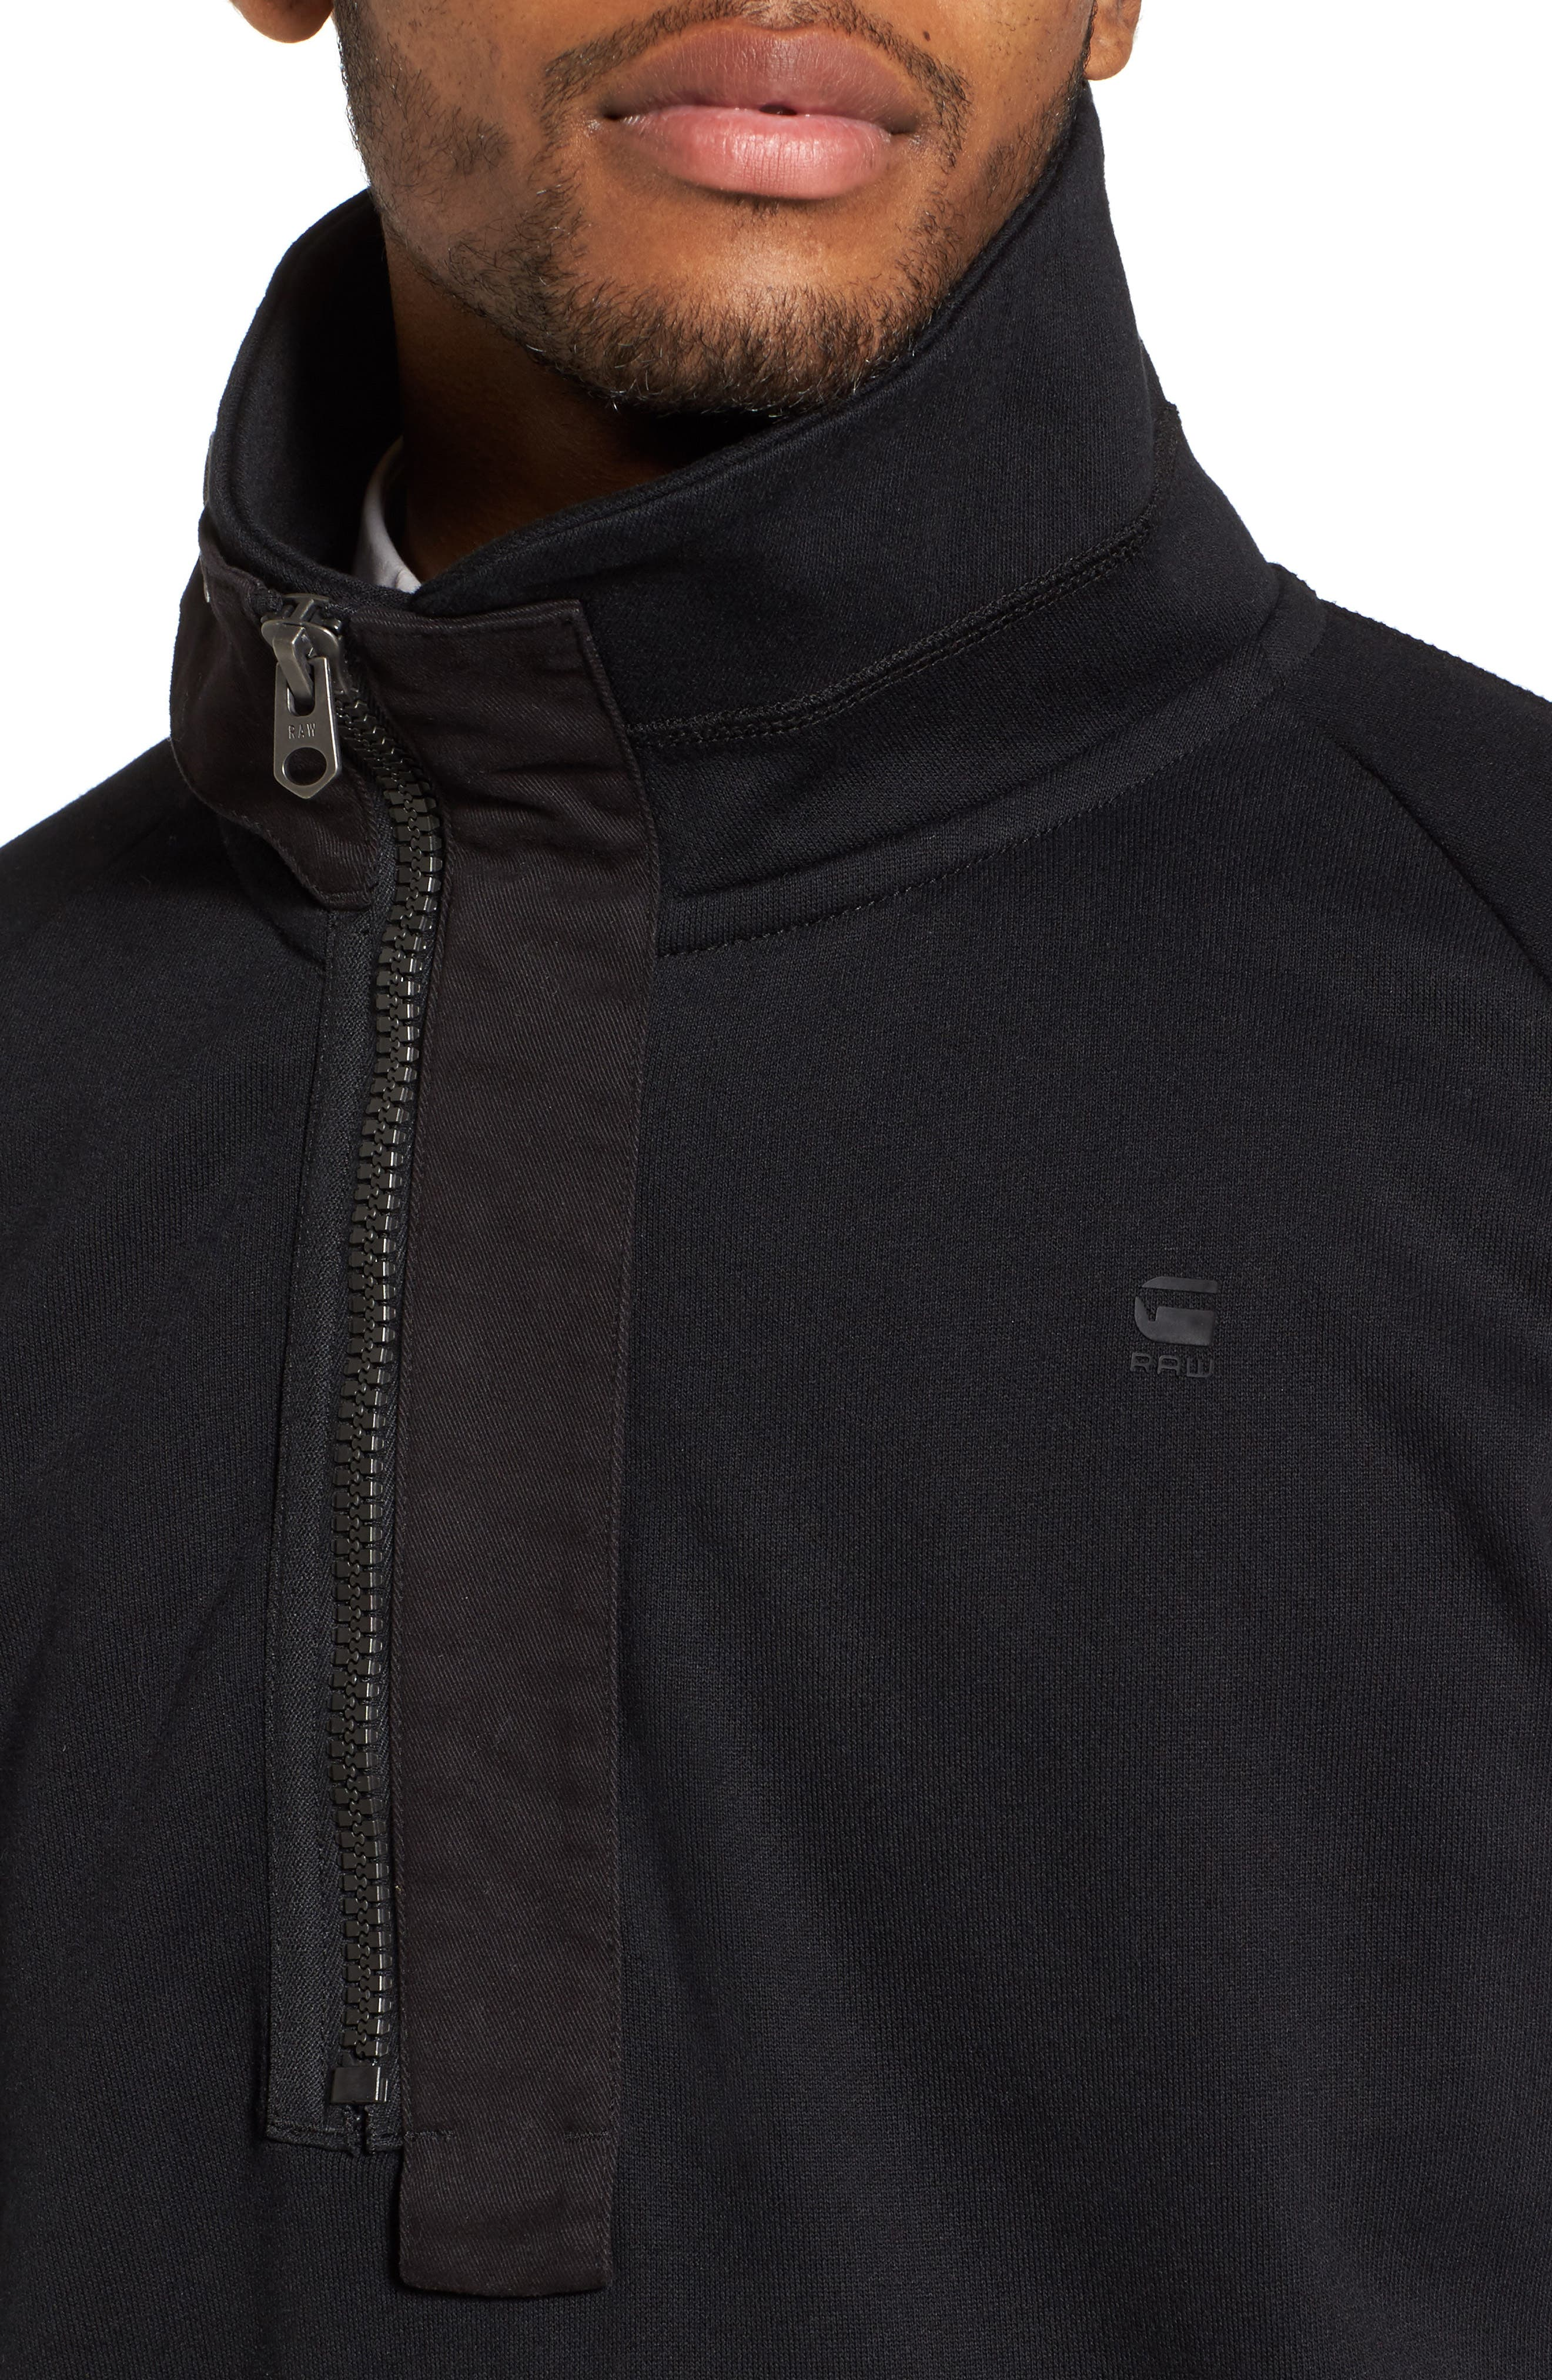 Empral Quarter Zip Pullover,                             Alternate thumbnail 4, color,                             Dark Black